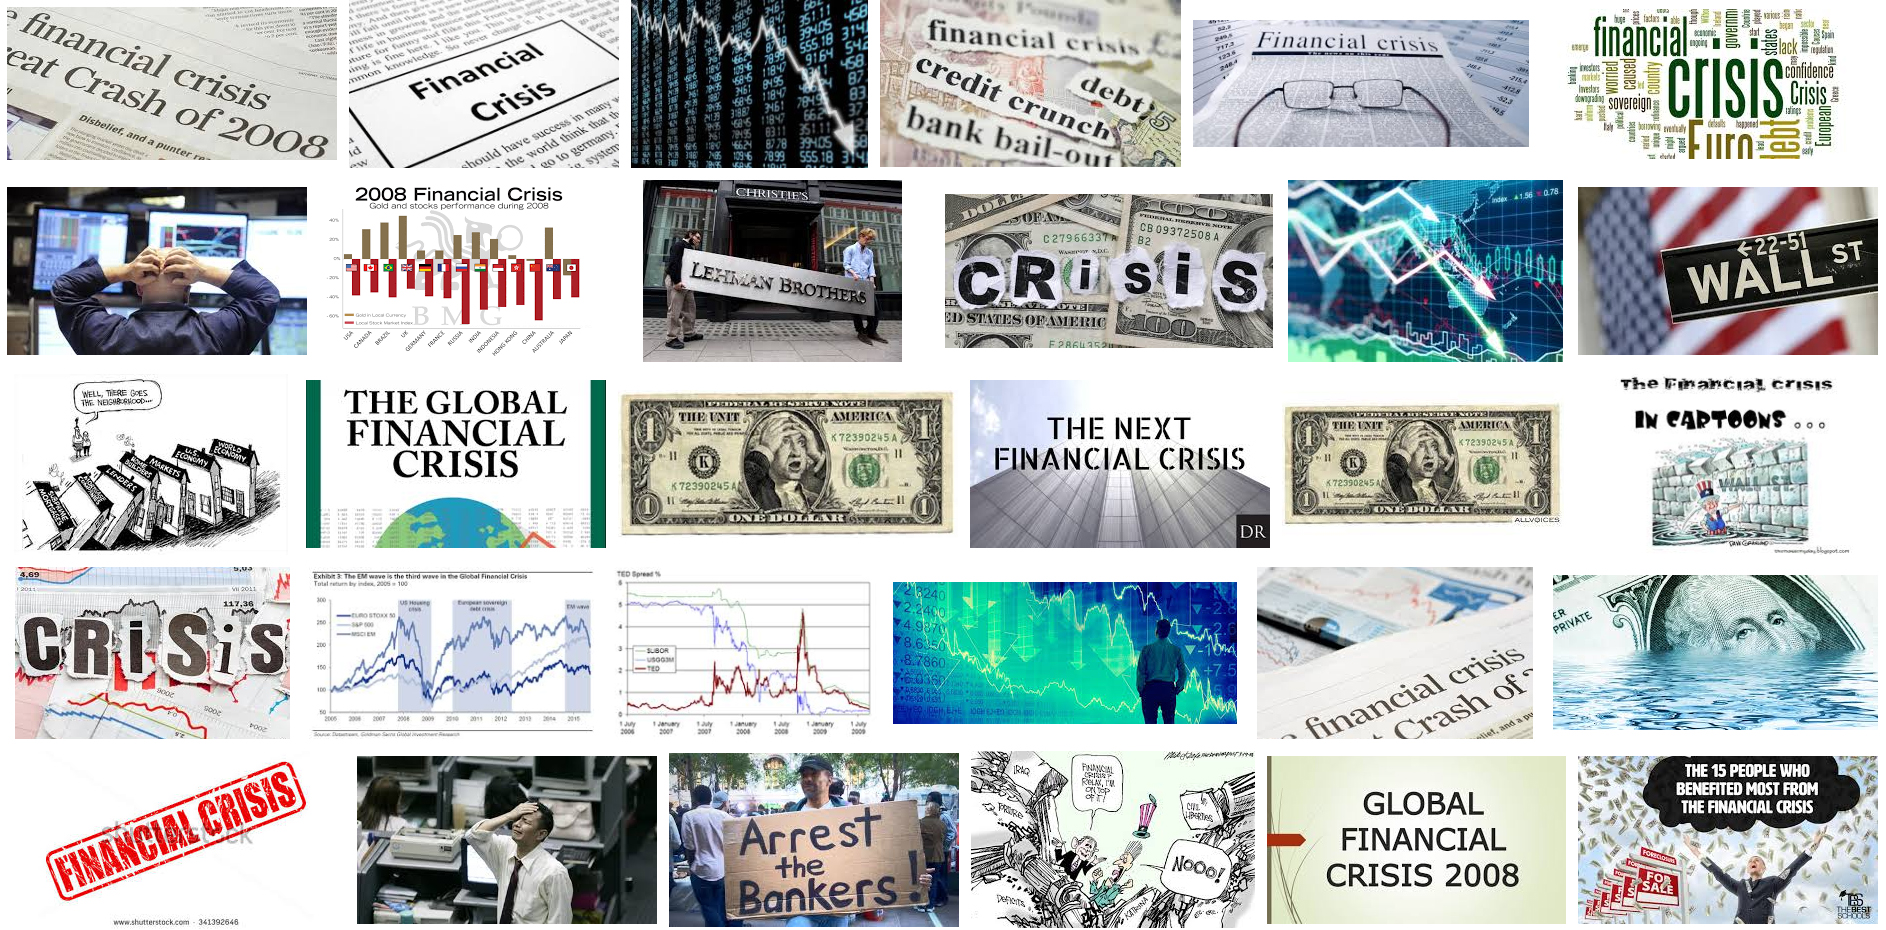 Next Financial Crisis and How to Stay Ahead of It